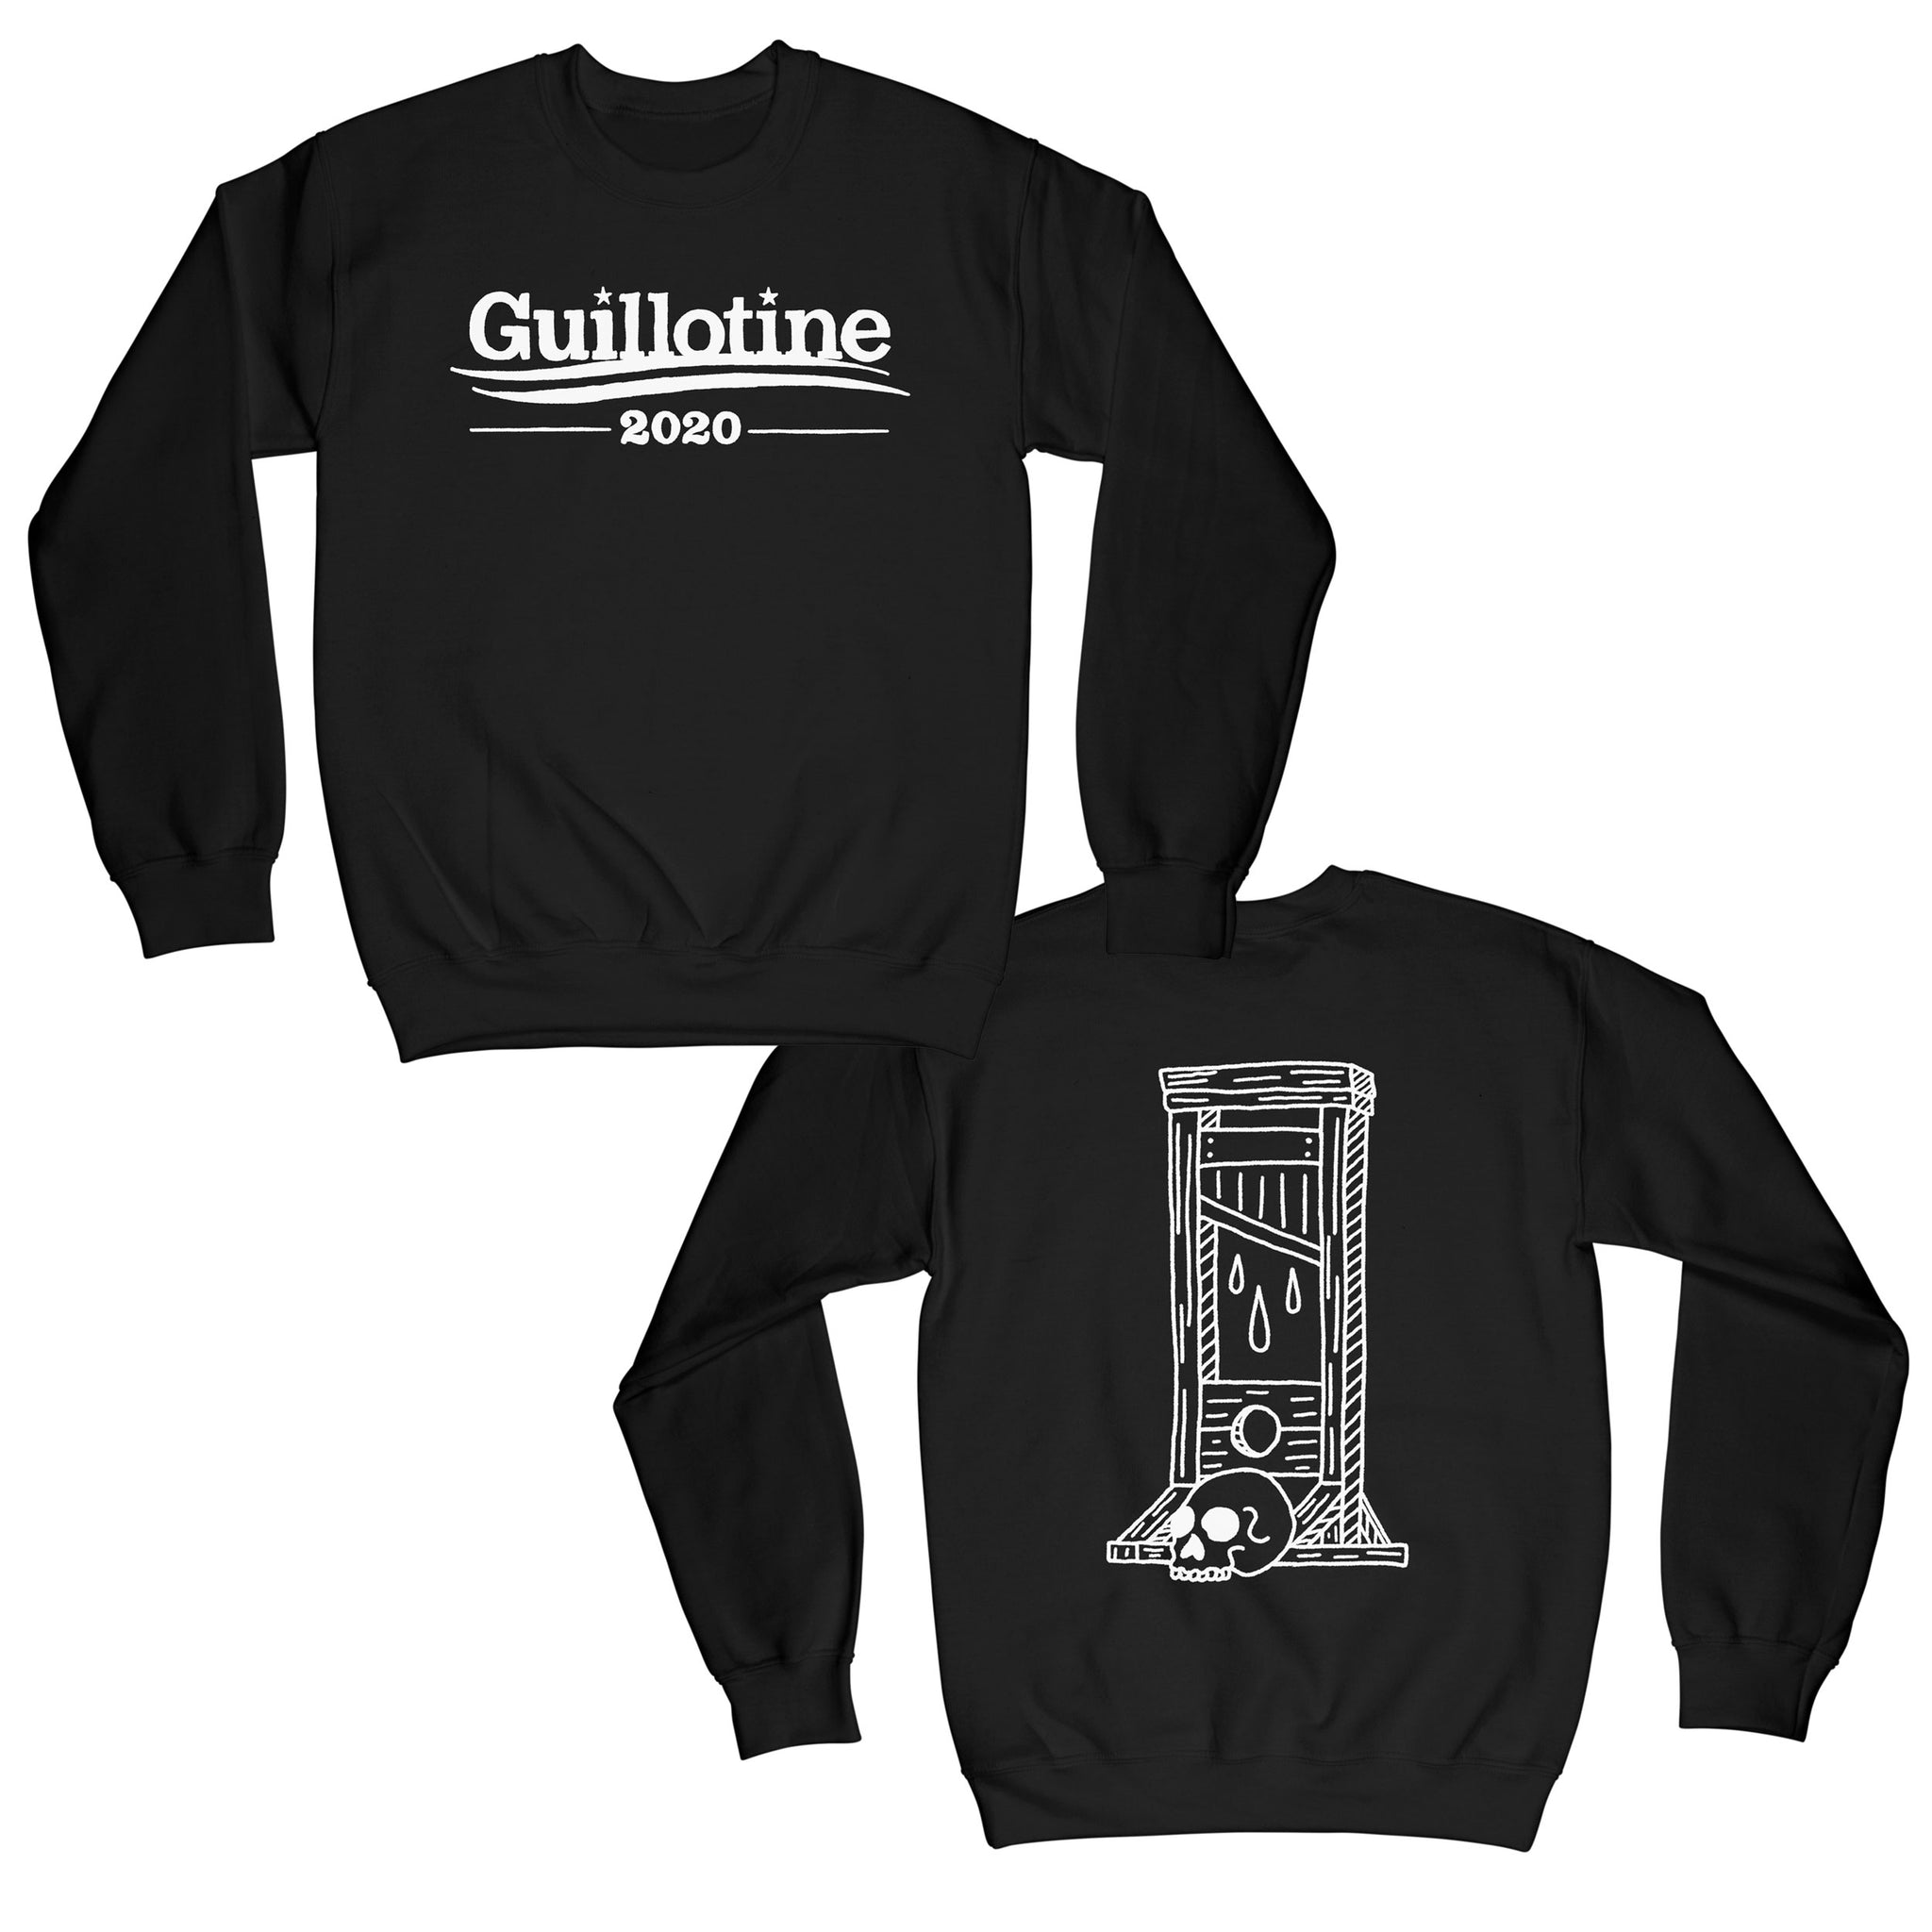 Guillotine 2020 Sweatshirt